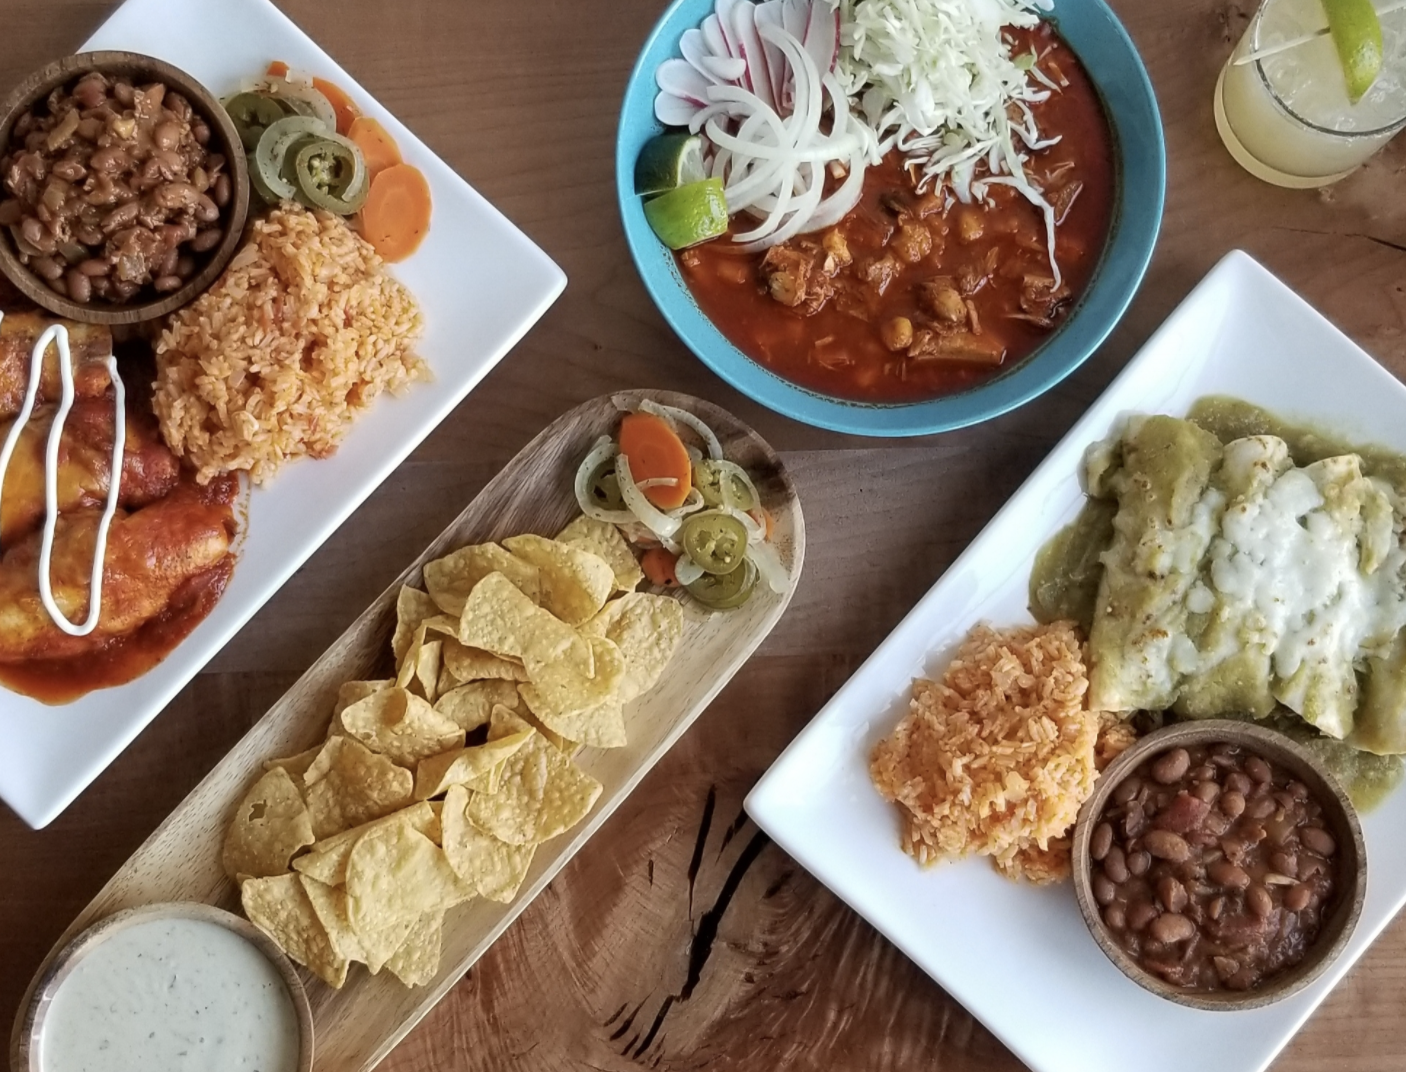 A topdown view of Tex Mex dishes, including enchiladas, chili, and chips with a side of dipping sauce